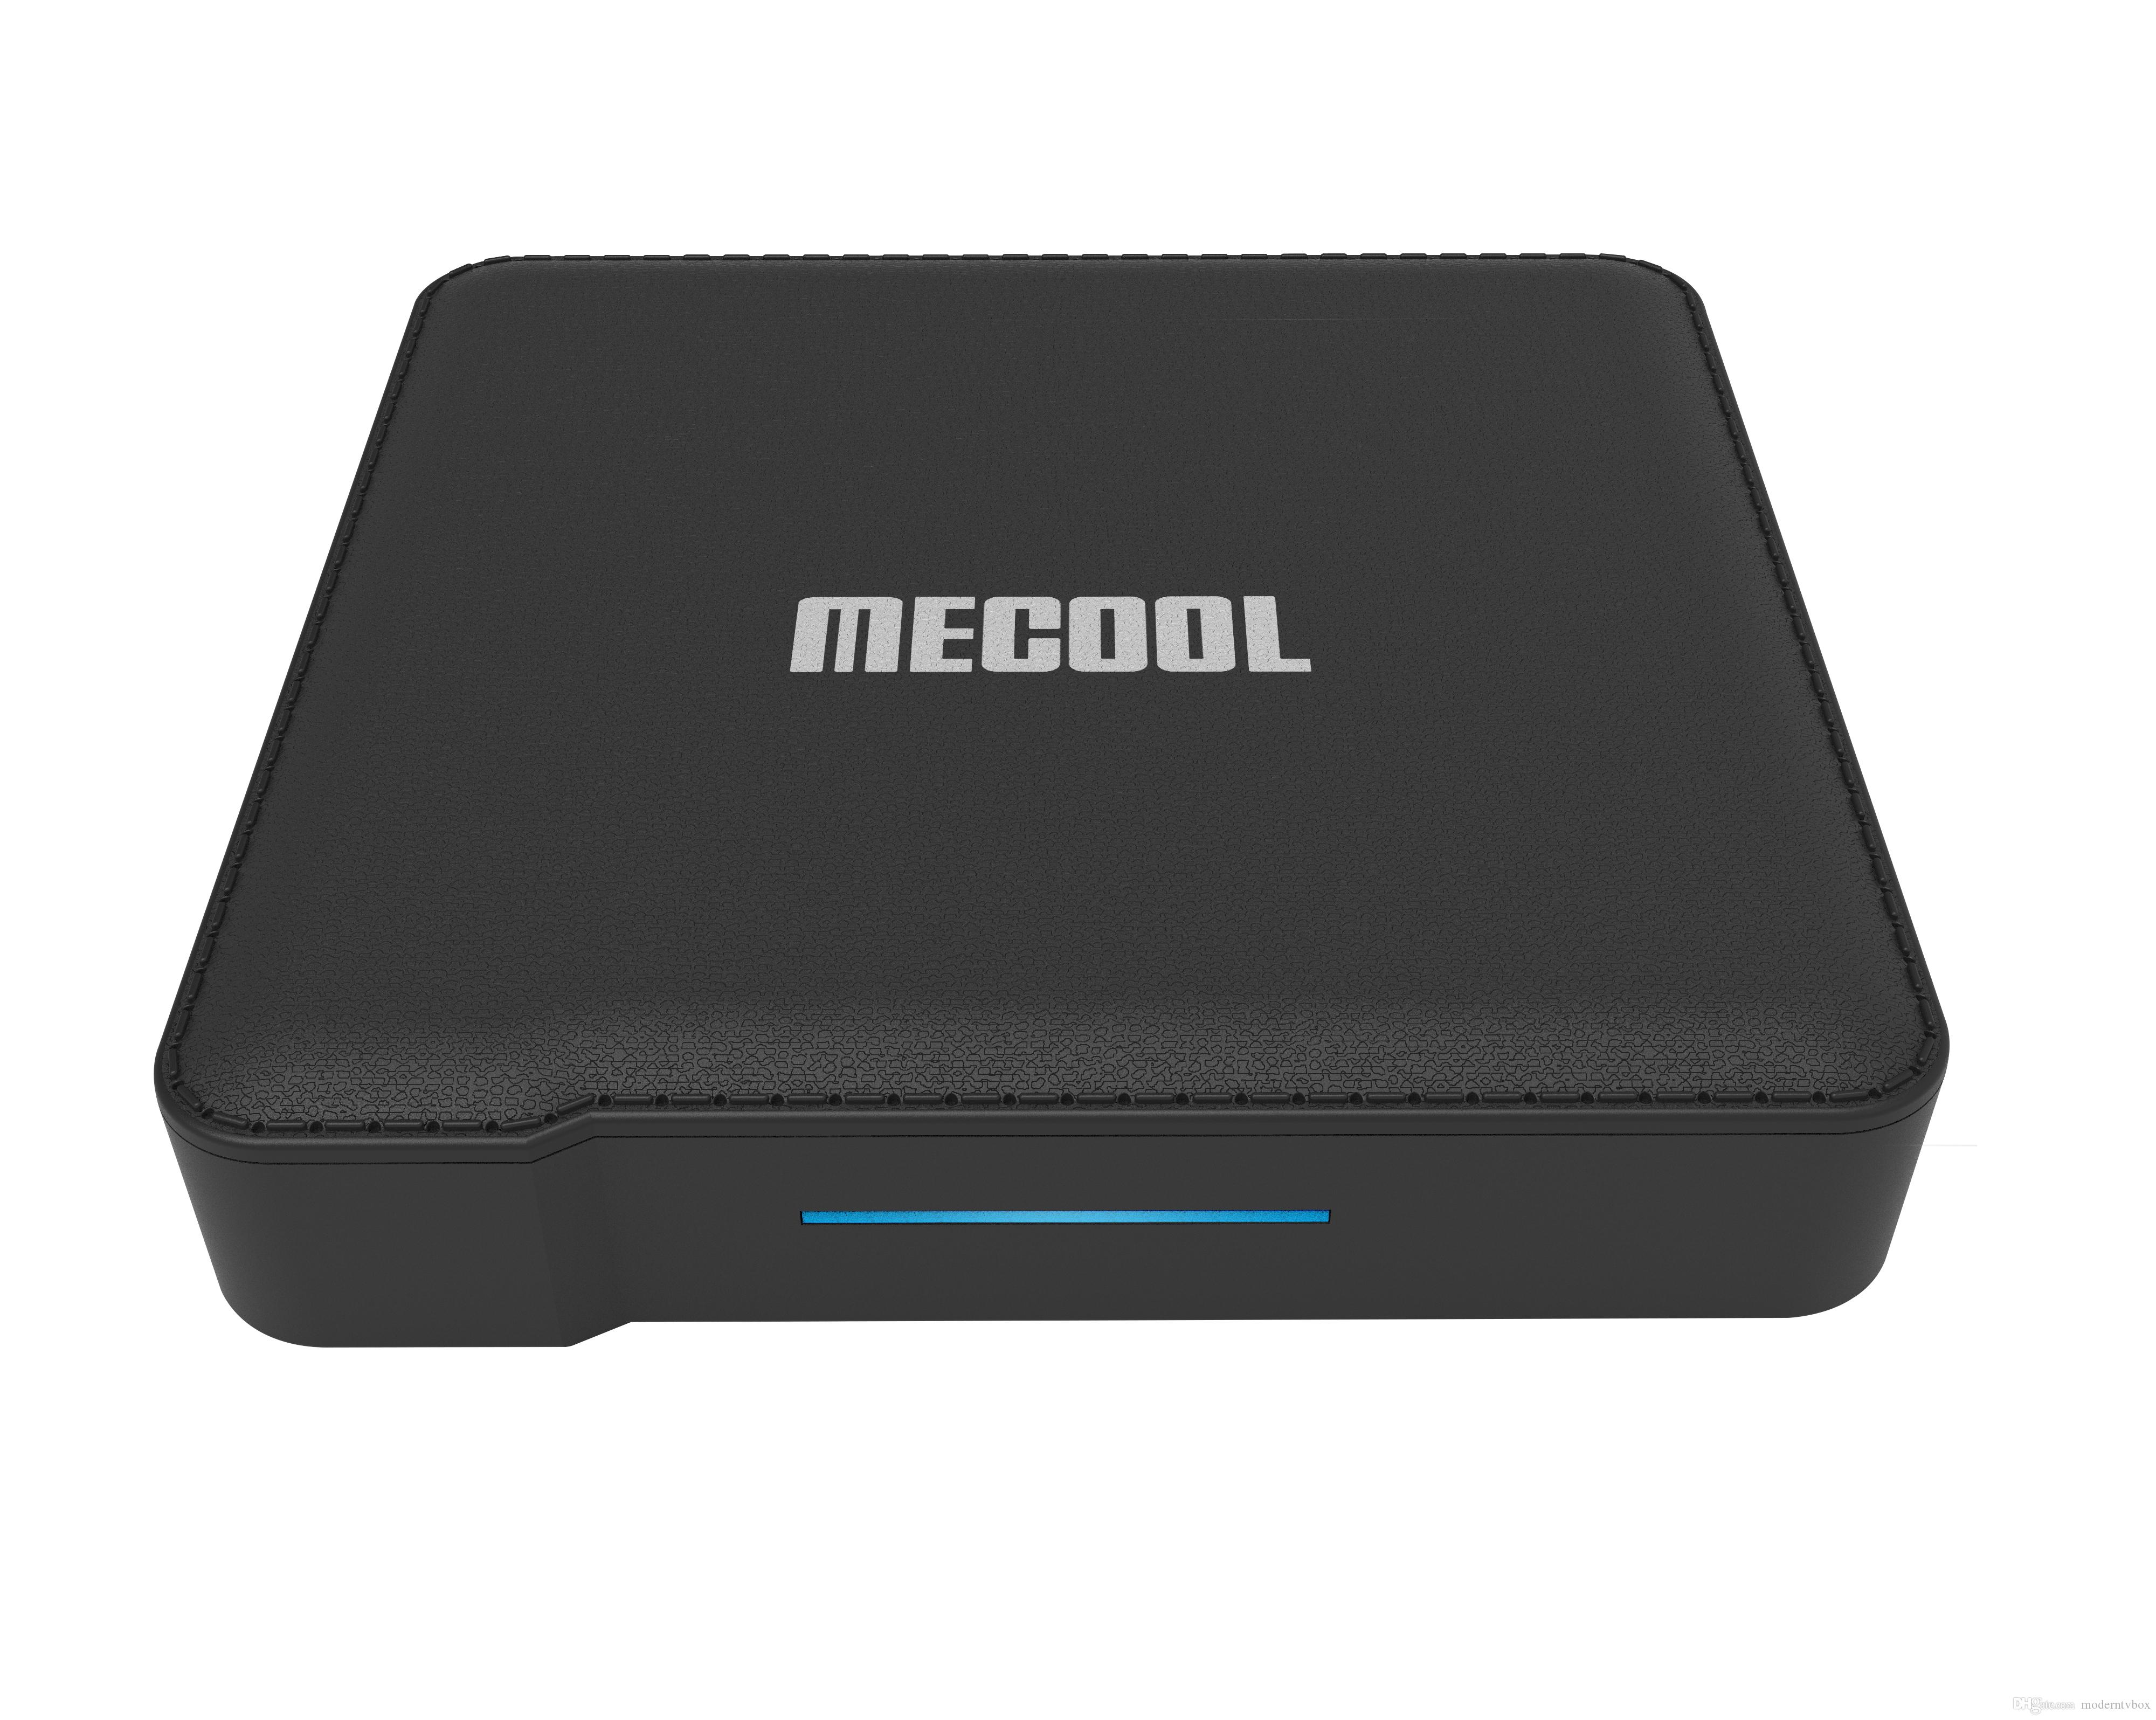 MECOOL KM1 AmLogic S905X3 Android 9.0 TV Box 4G DDR 32G ROM 2.4G/5G WiFi 4K BT4.2 Voice Control Google Certified Set Top Box